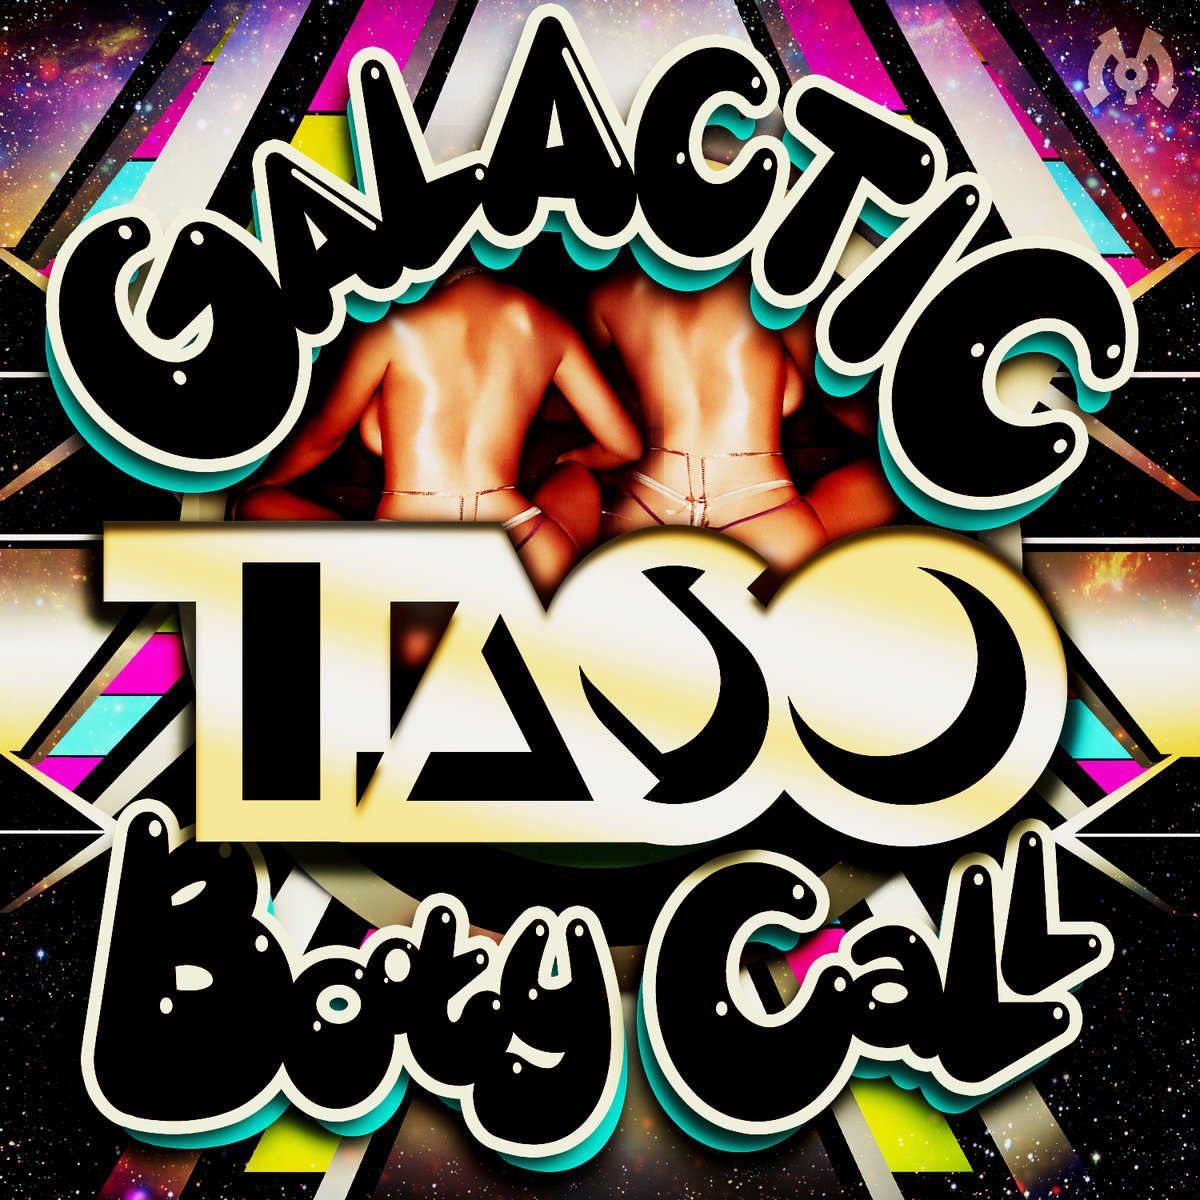 Taso - I May Not Believe @ 'Galatic Booty Call' album (electronic, dubstep)